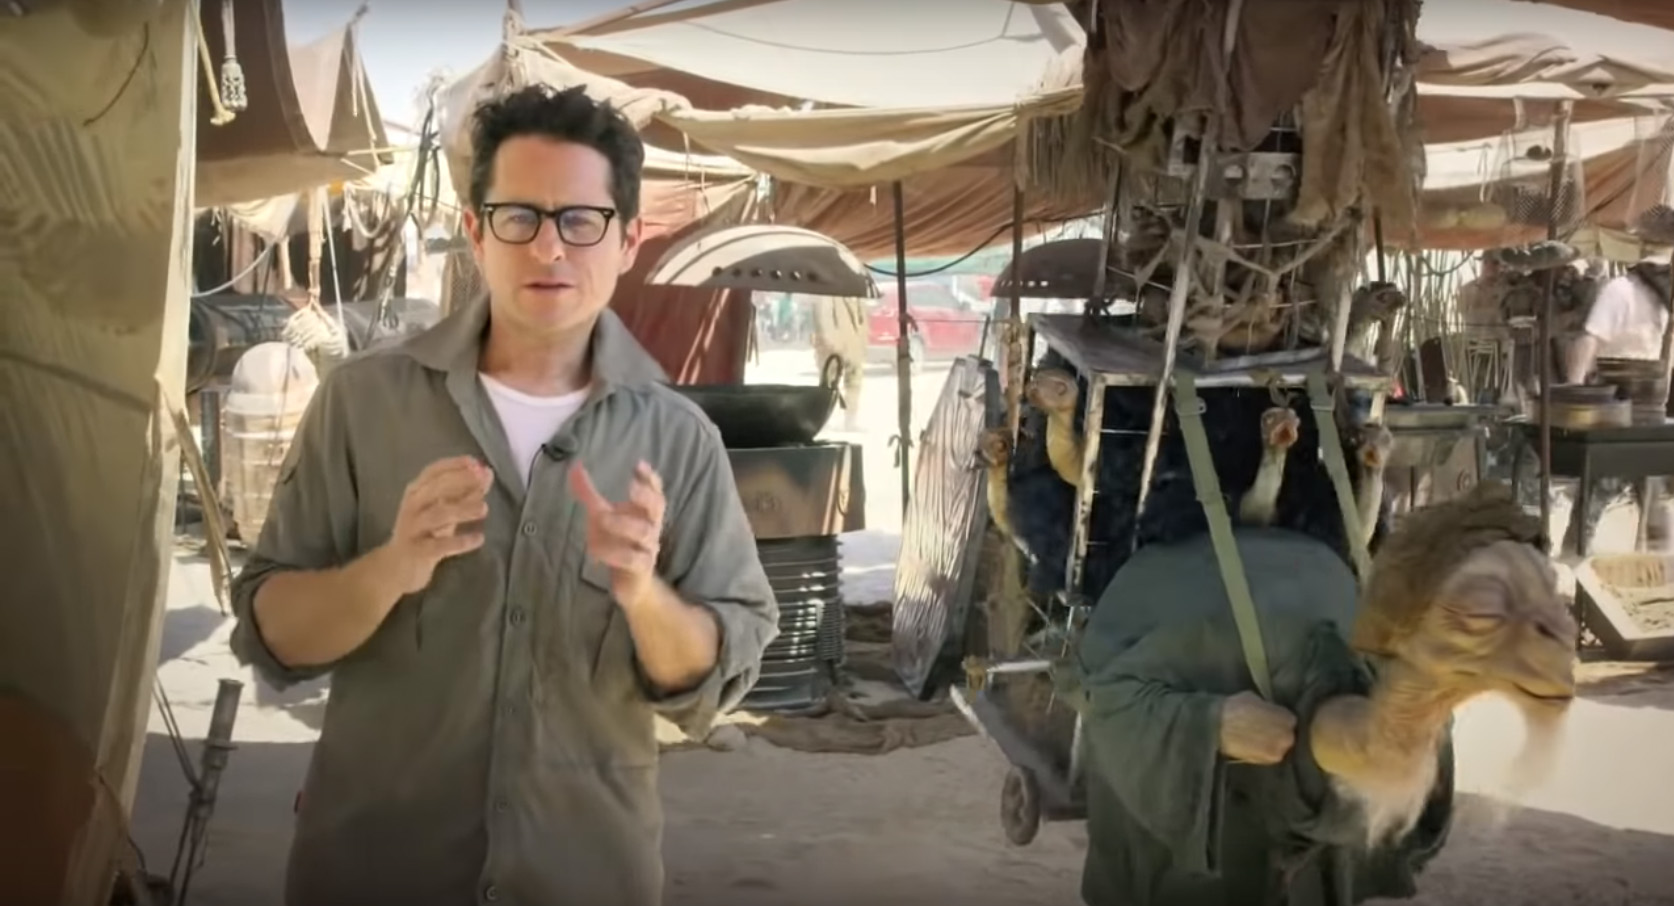 JJ Abrams Star Wars Force Awakens Star Wars: Episode IX